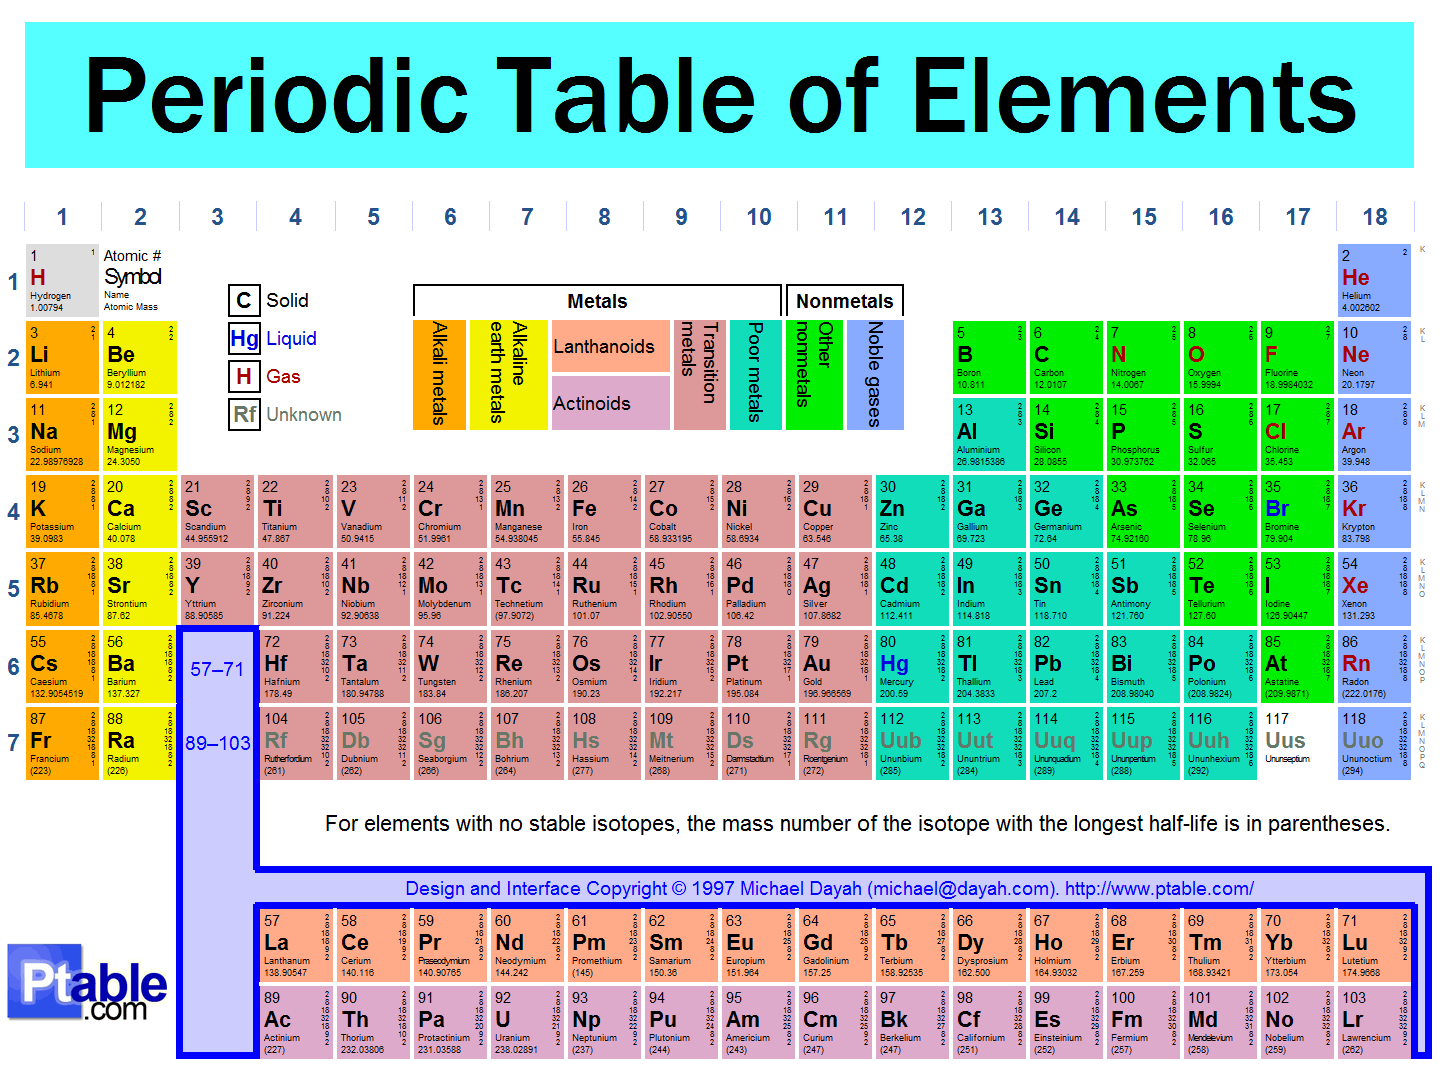 Naming new elements skeptical science we have two new elements in the periodic table 114 and 116 the details are in the journal of pure and applied chemistry here both are highly radioactive urtaz Choice Image